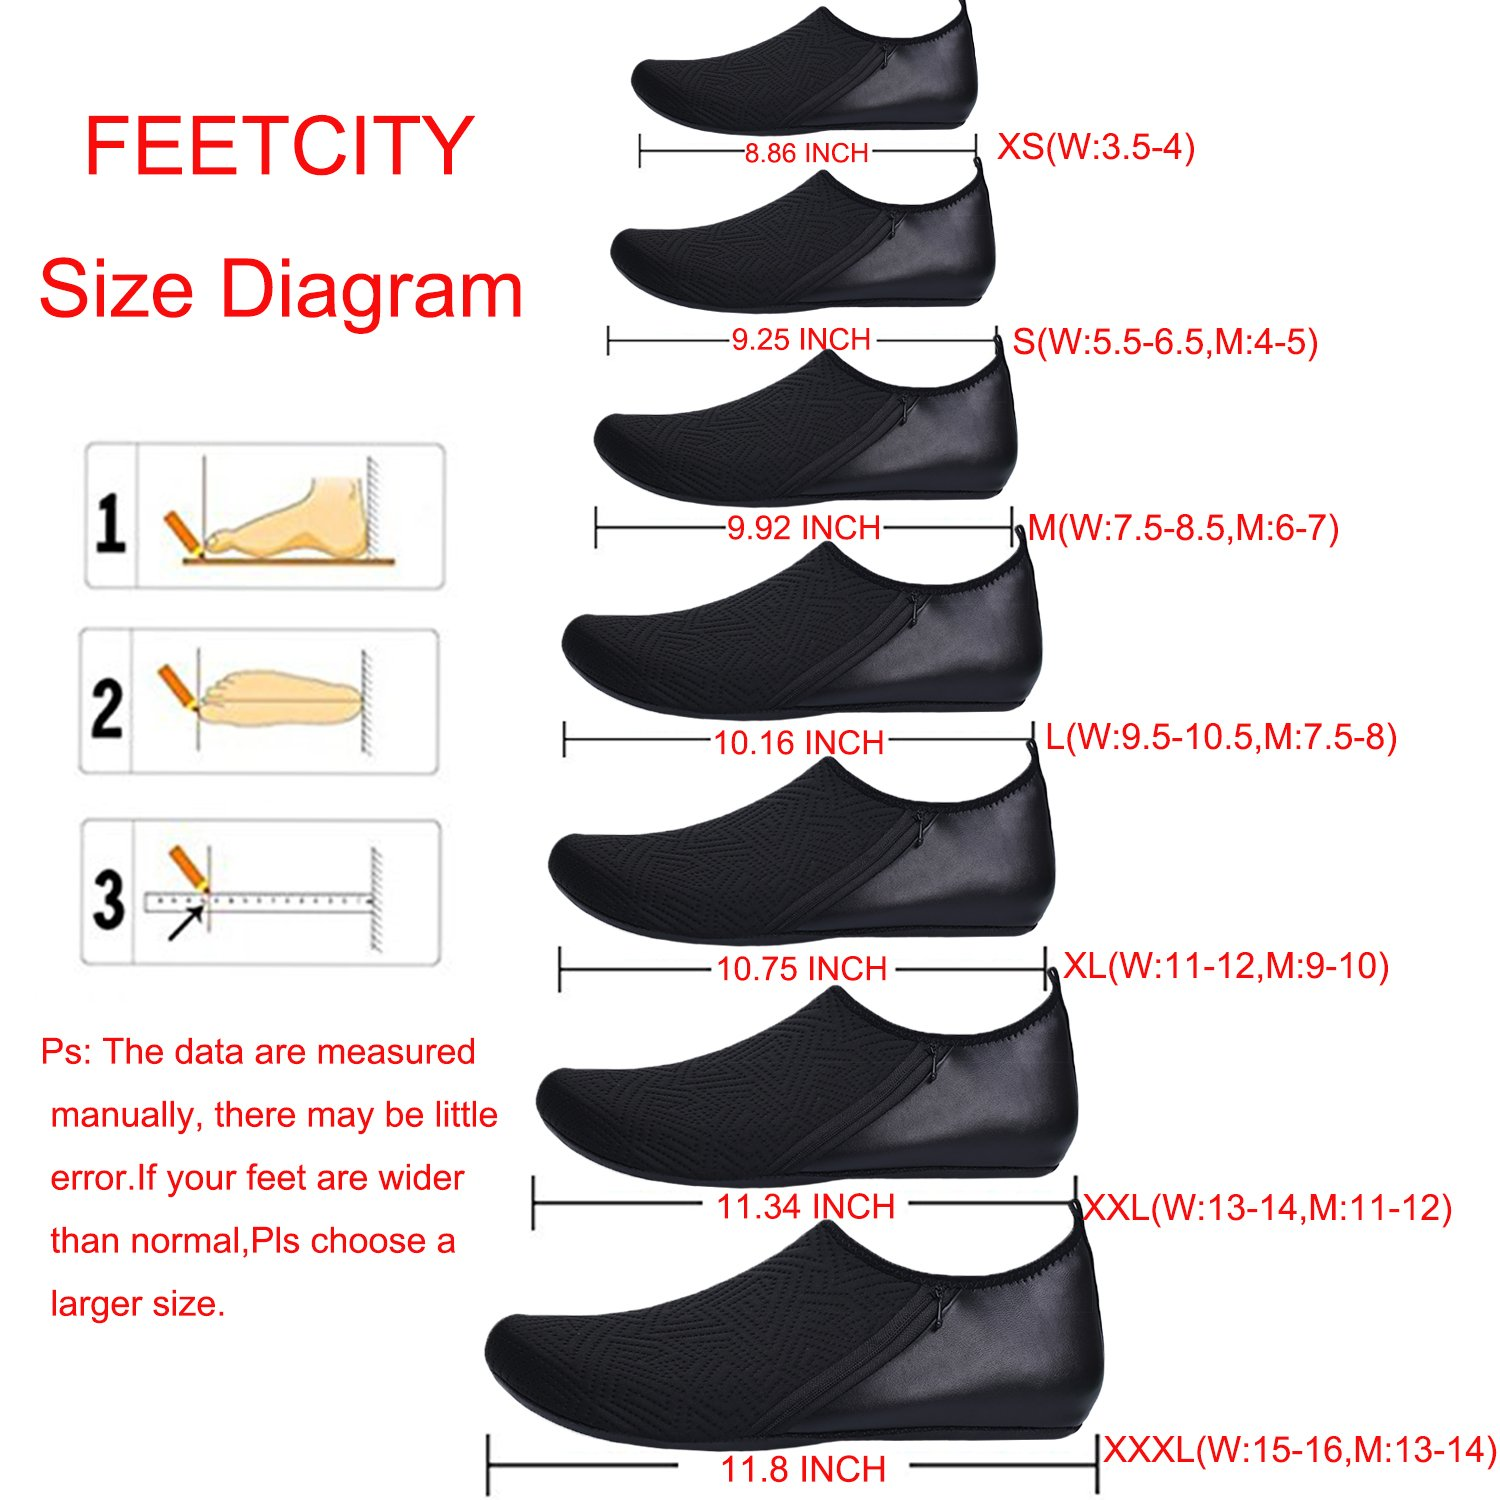 FEETCITY Womens Water Shoes Mens Water Footwear Quick-Dry Water Sports Beach Swim Shoes Leaf Black M(W:7.5-8.5,M:6-7) by FEETCITY (Image #3)